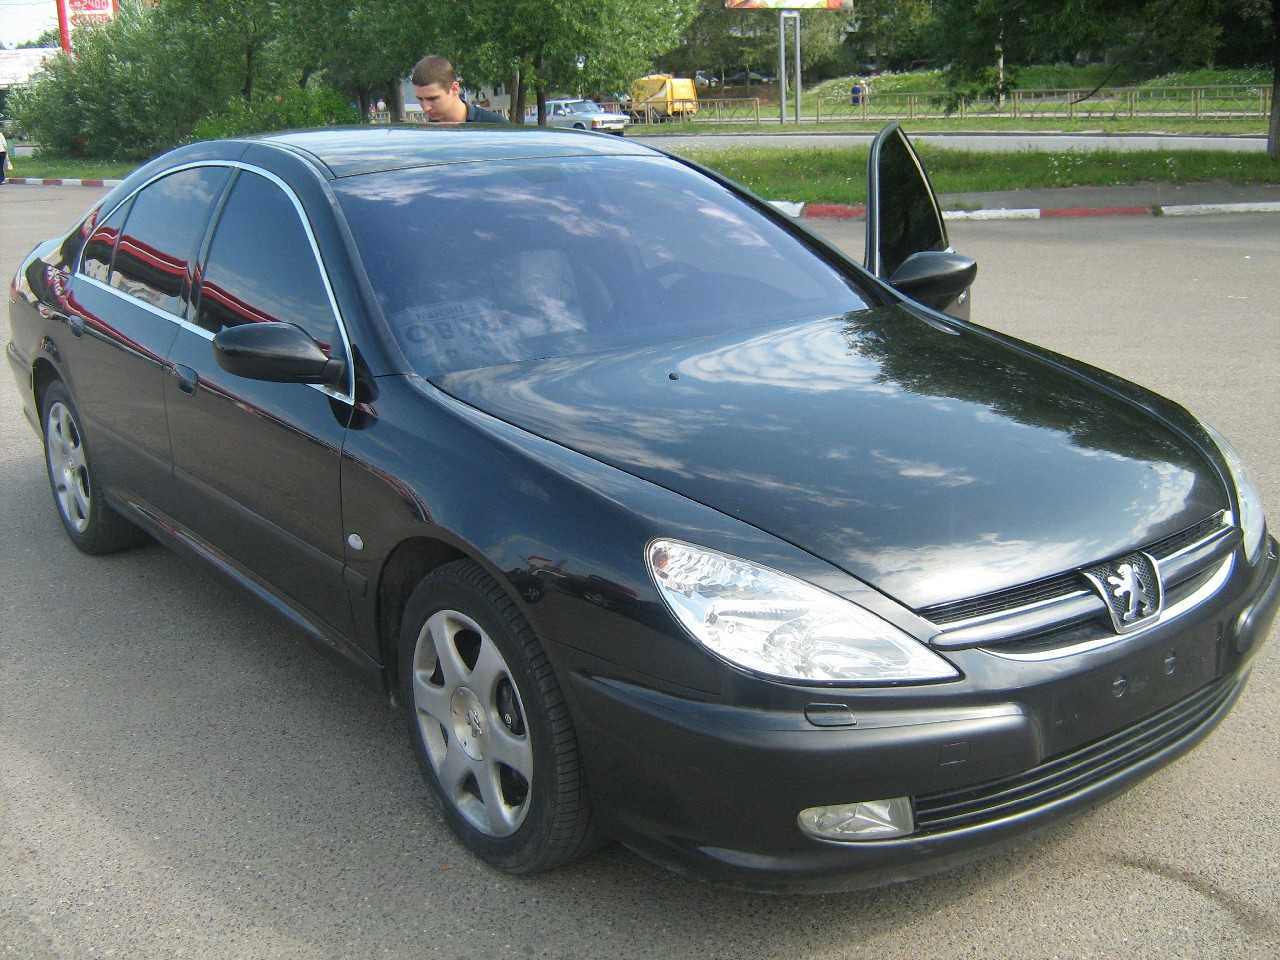 File:Peugeot607.jpg - Wikipedia, the free encyclopedia